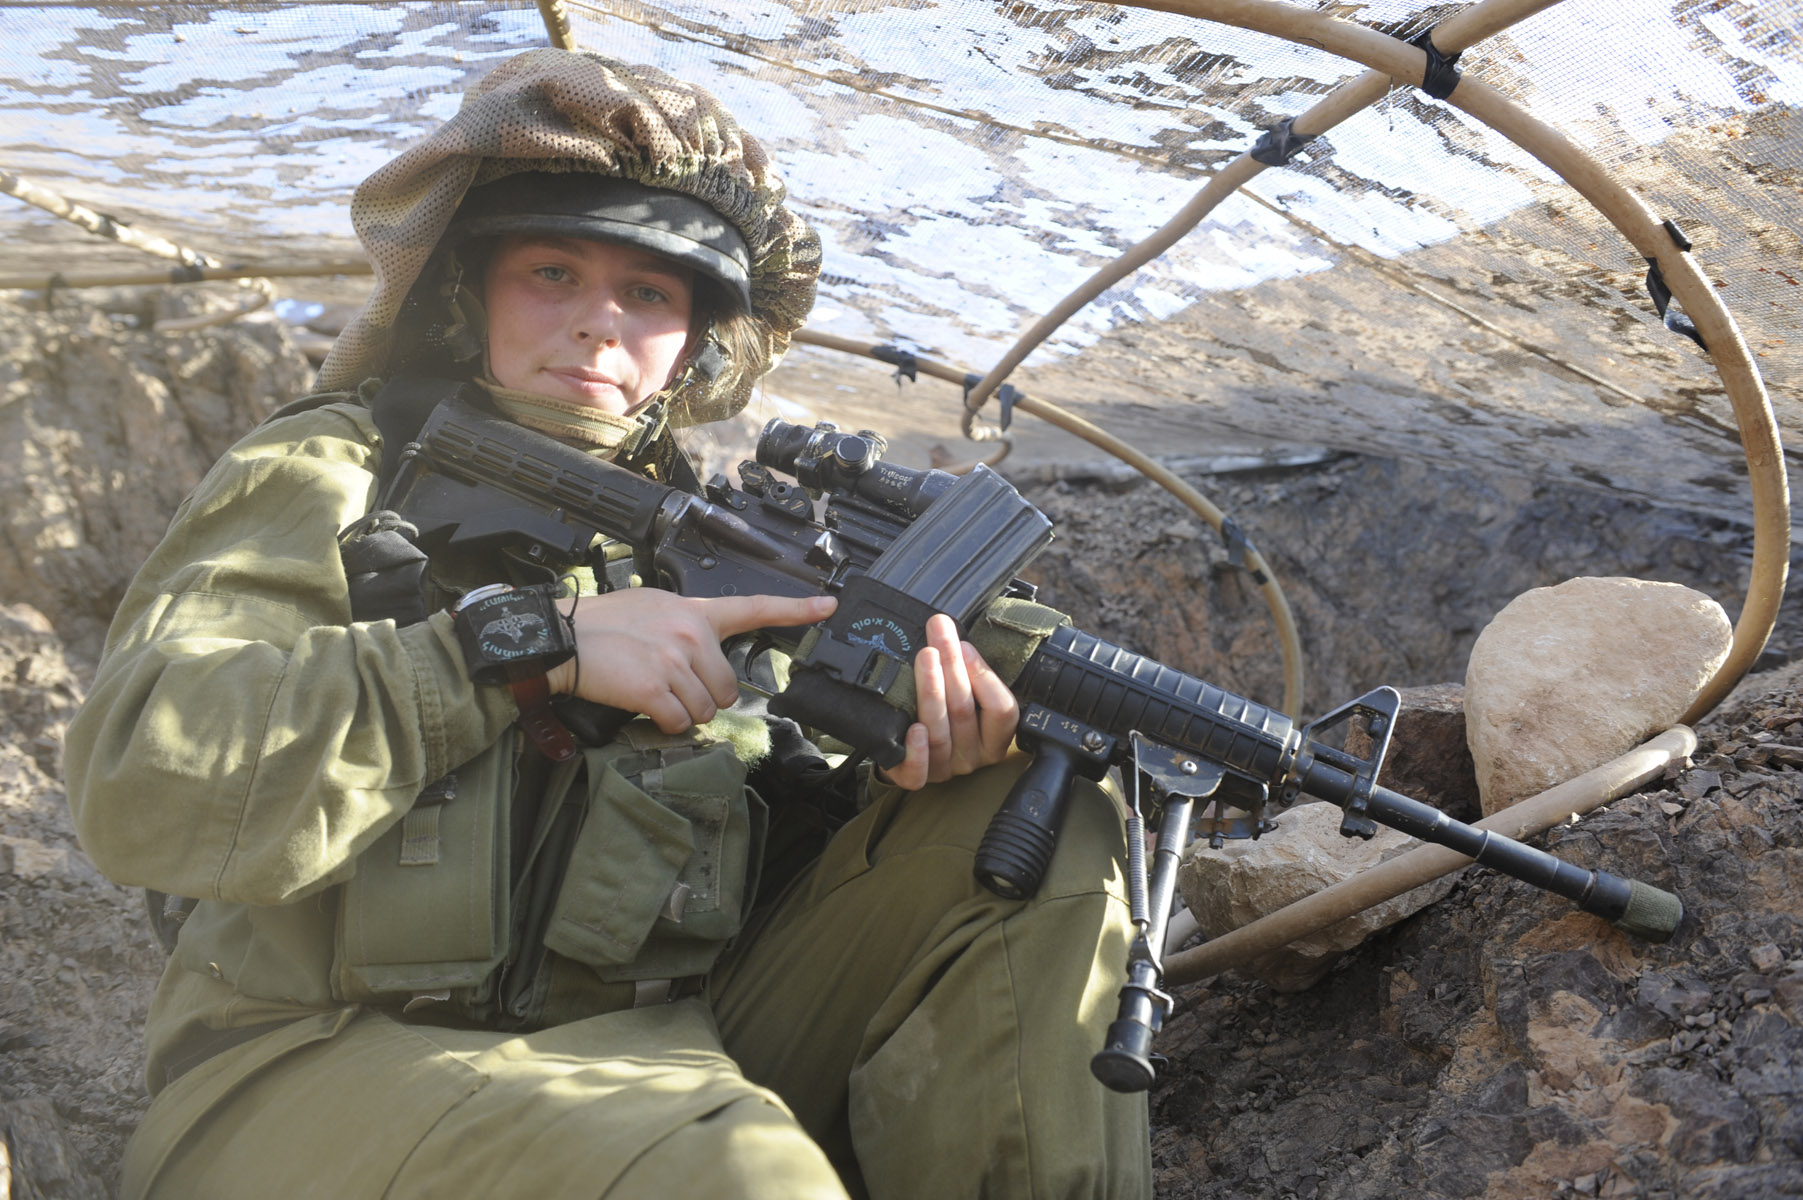 File:Flickr - Israel Defense Forces - The Life of Female ... M16 Acog